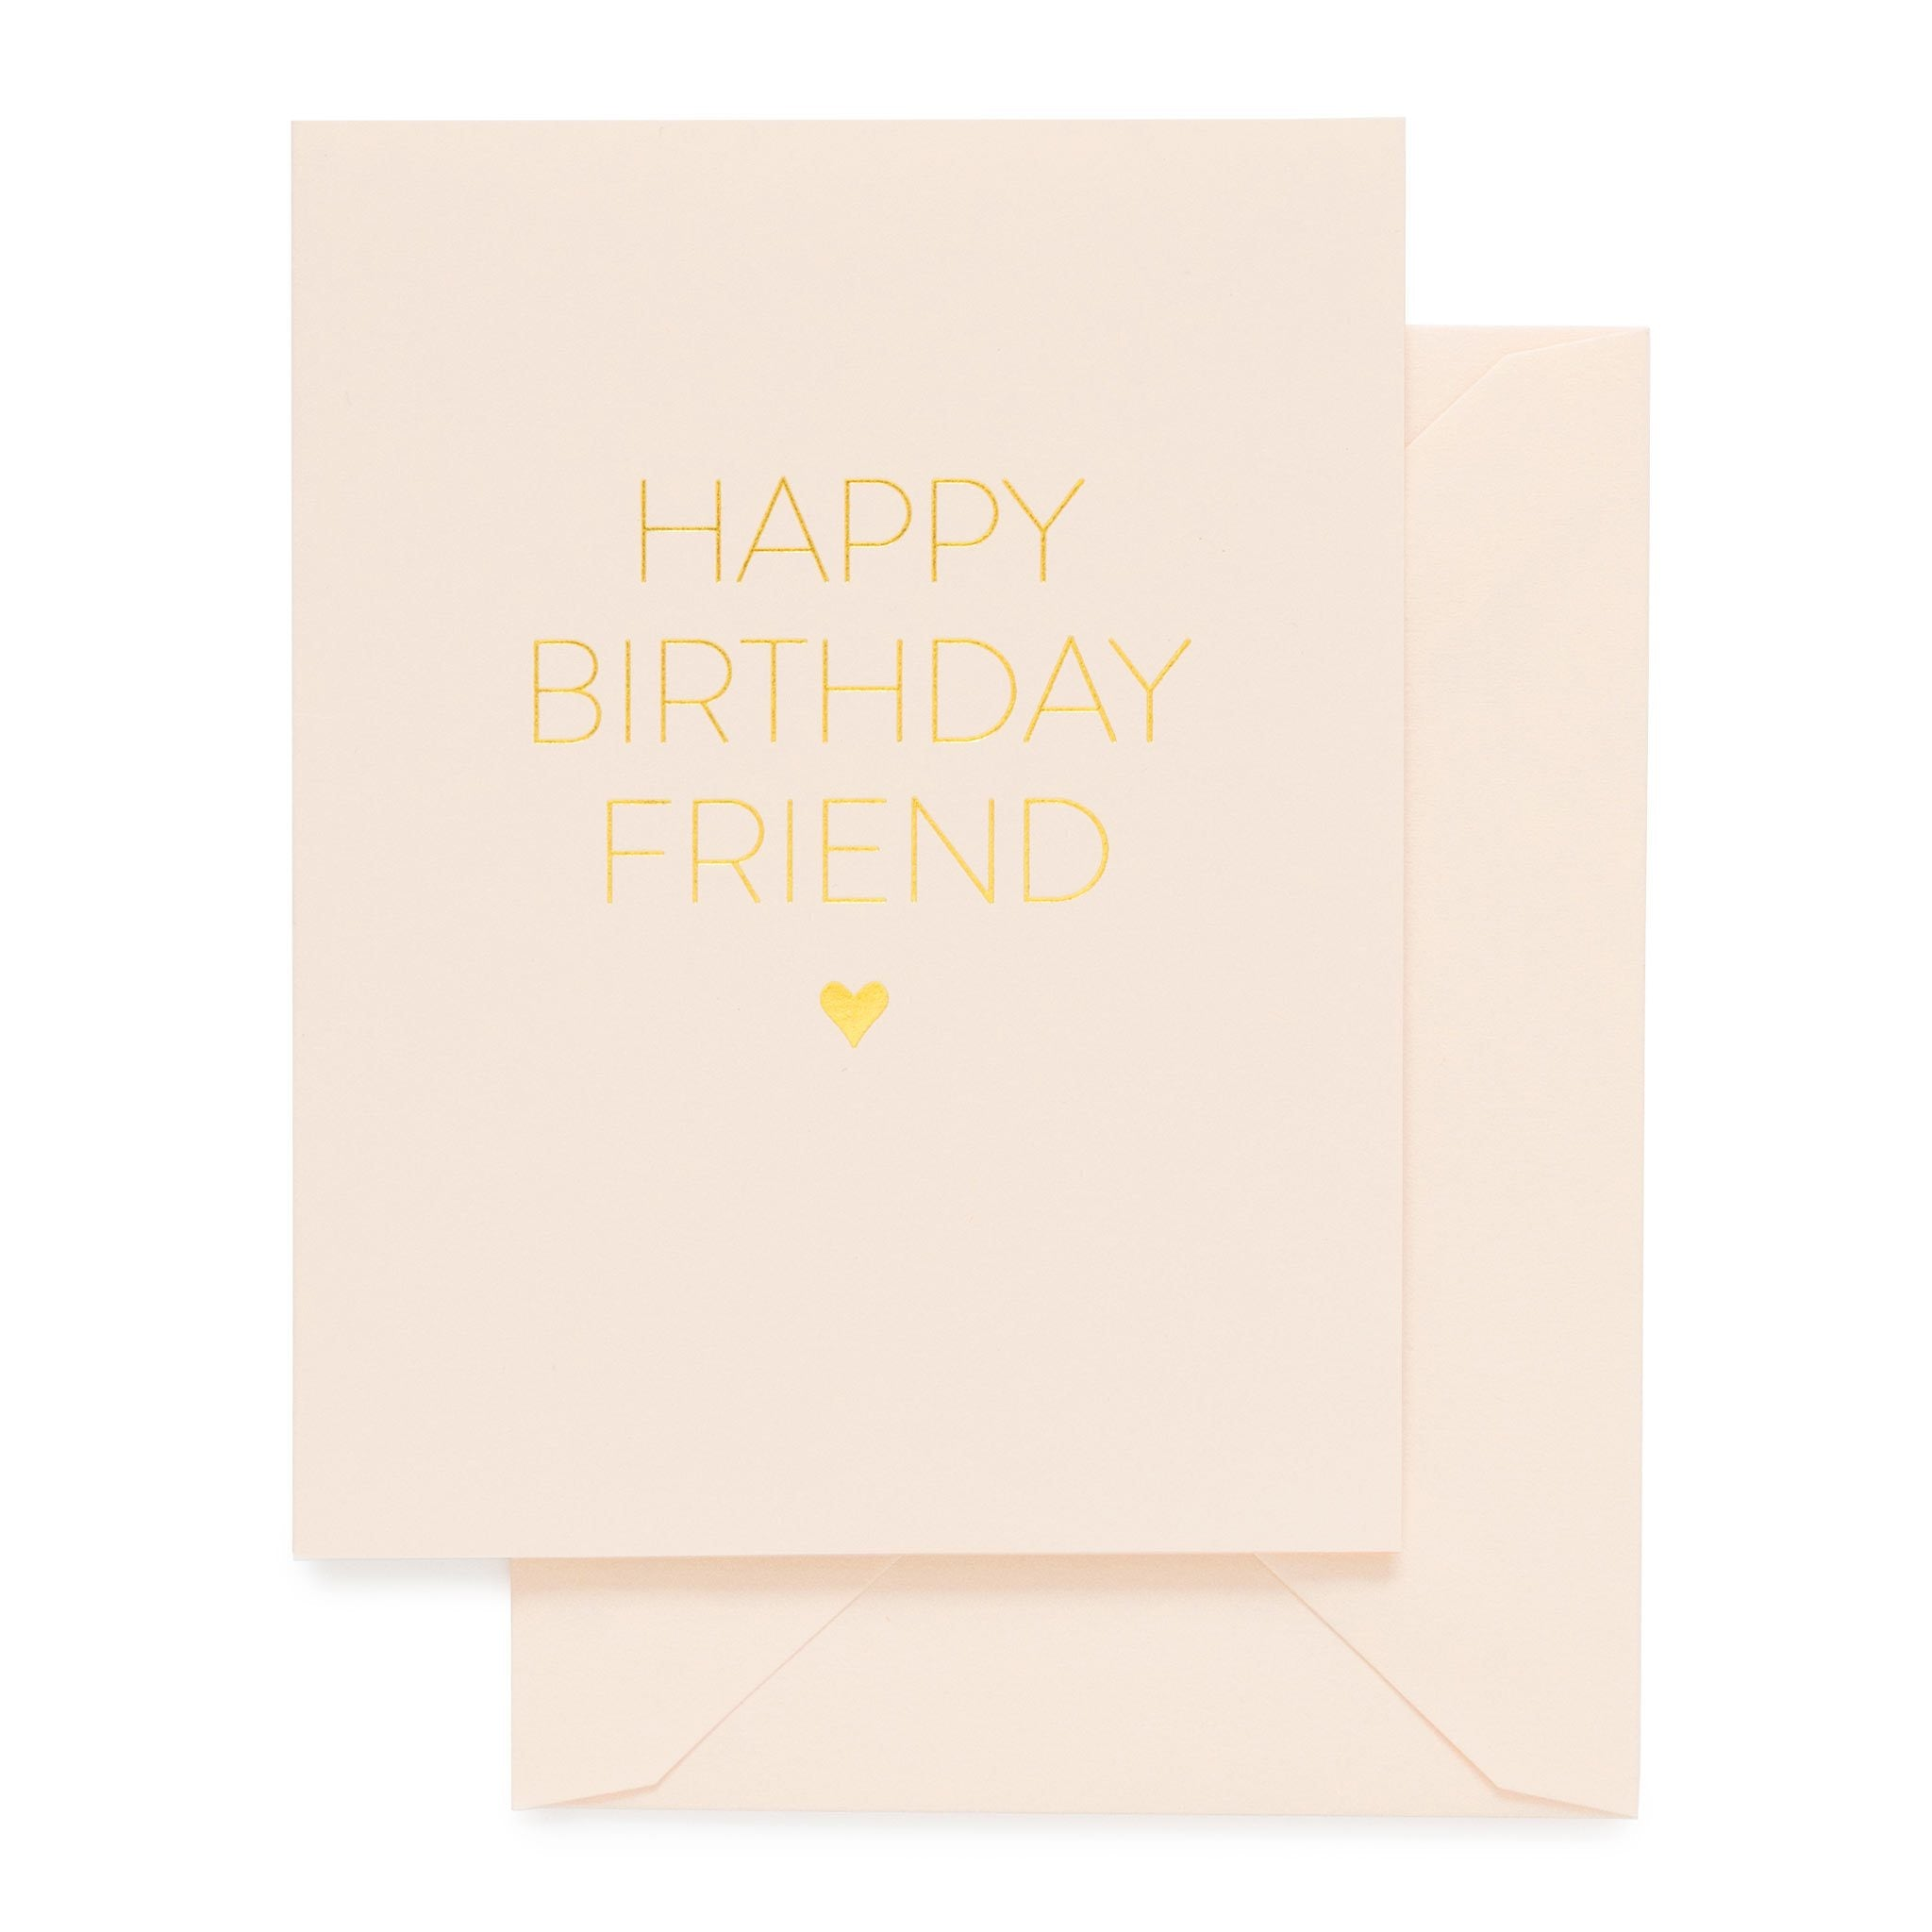 Paper Plane - Sugar Paper - Happy Birthday Friend - $9NZD